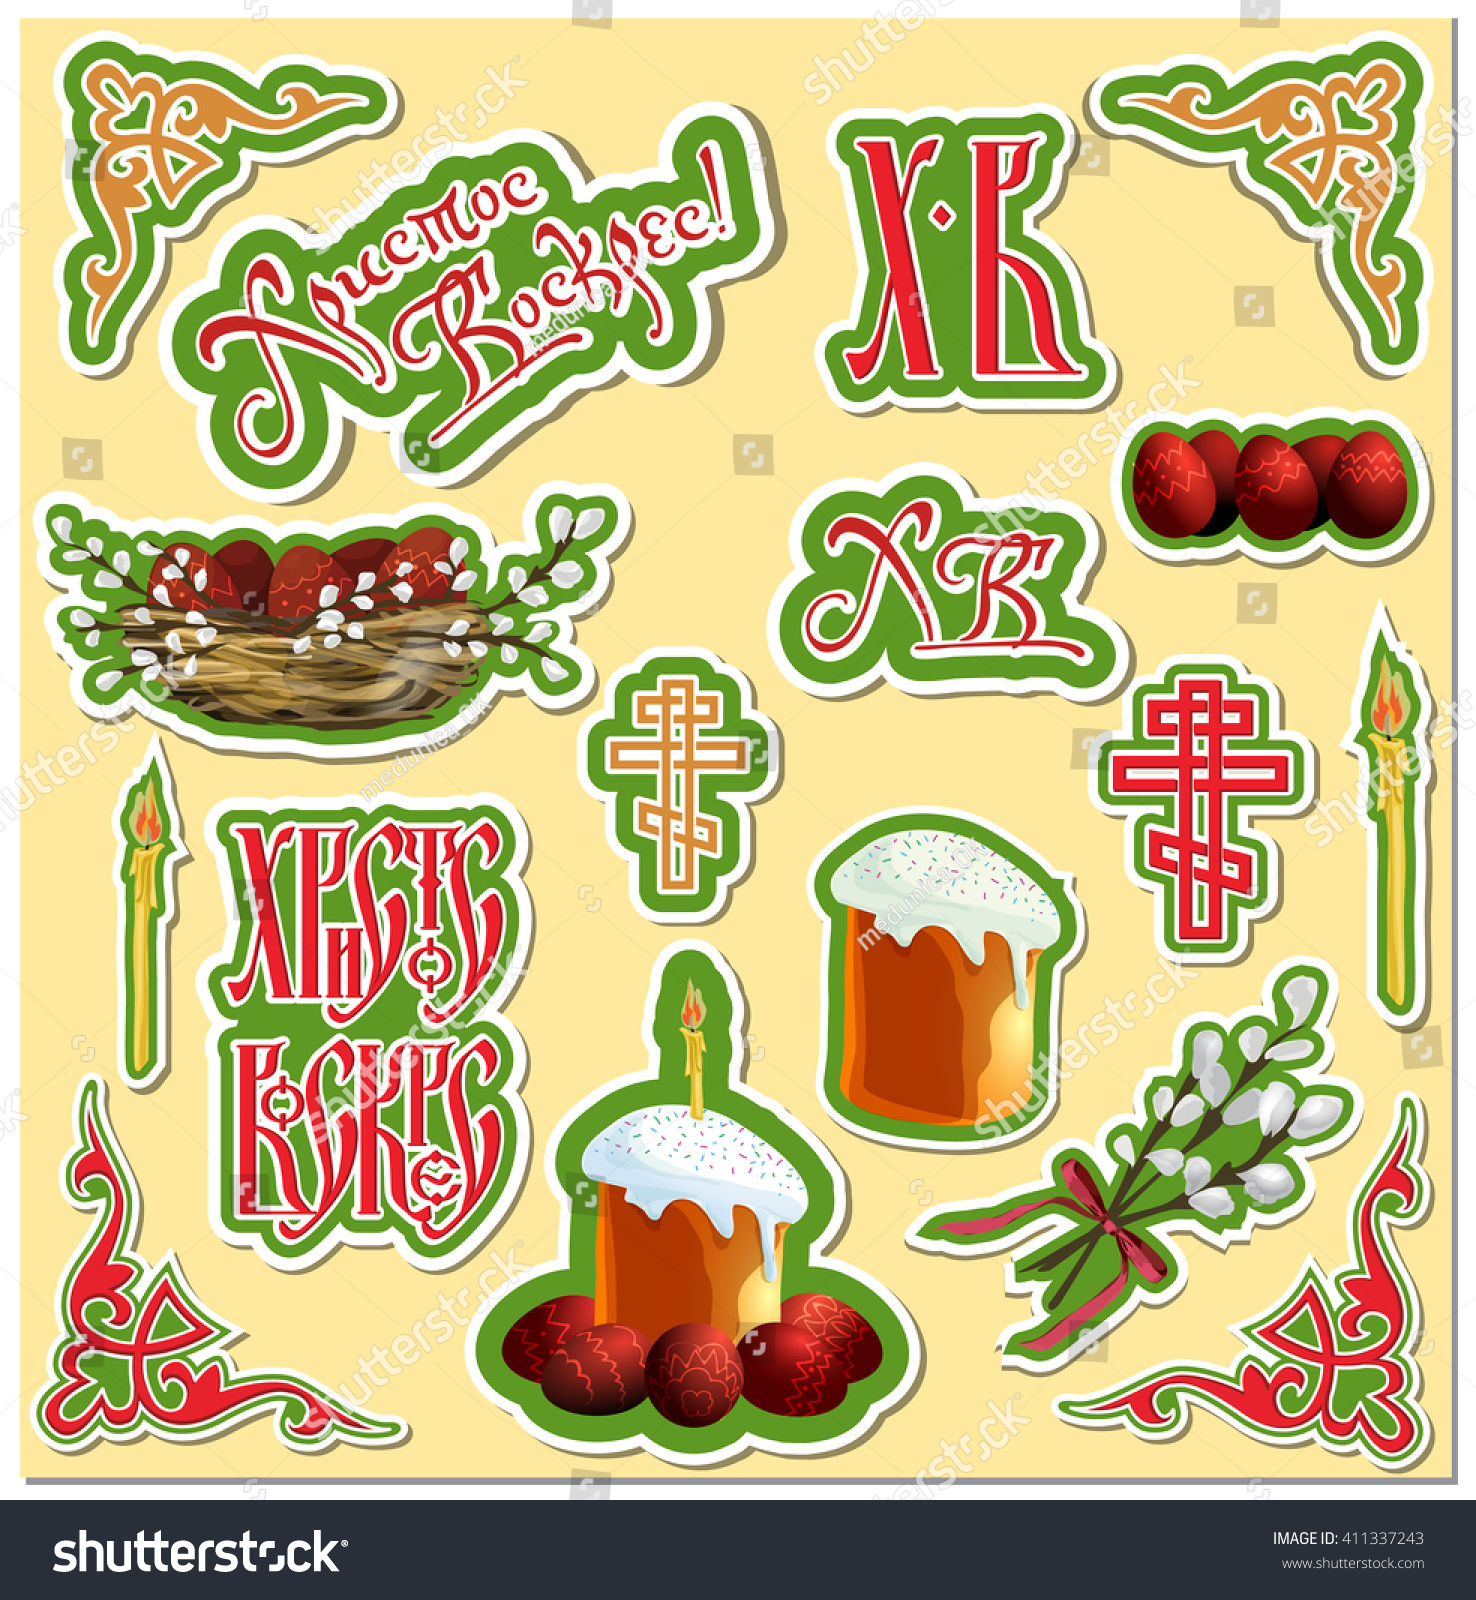 Stickers traditional orthodox easter symbols text stock stickers with traditional orthodox easter symbols text is christ is risen cake candle buycottarizona